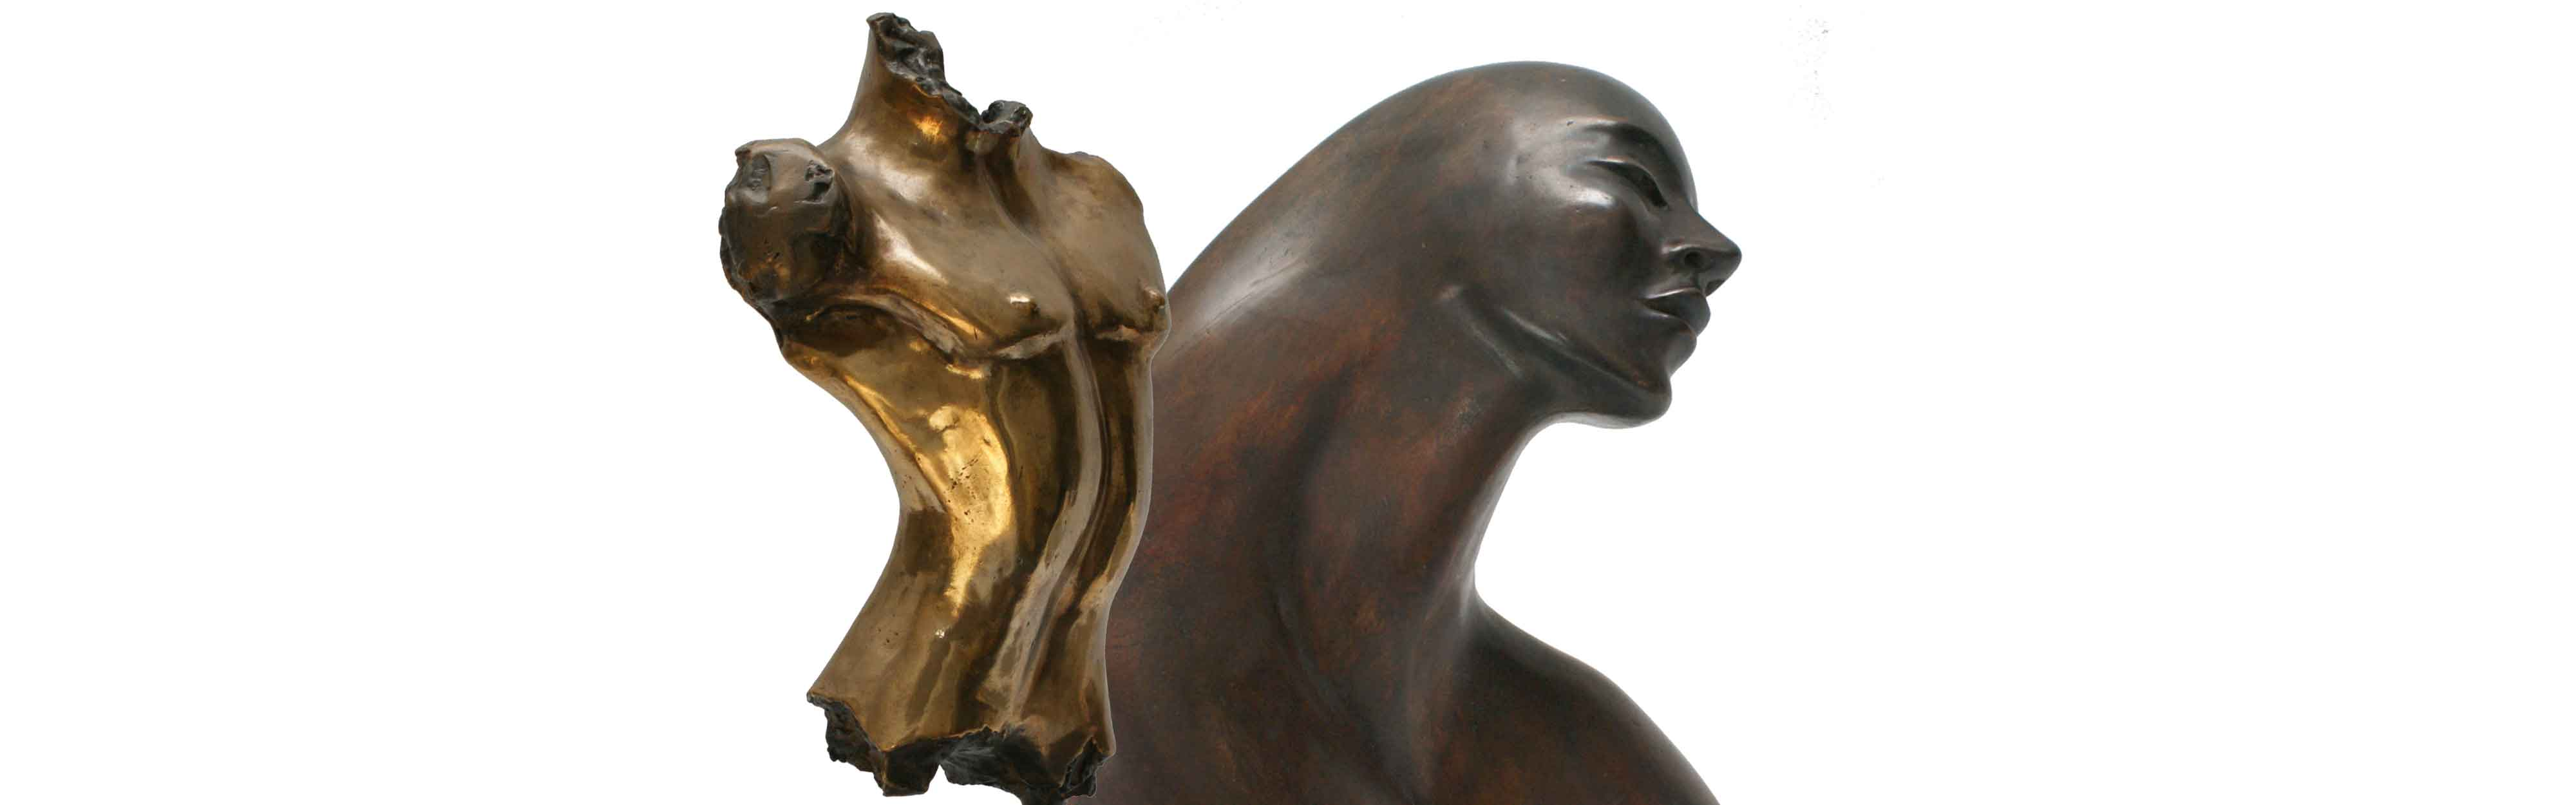 bronzes with emotion, power and passion